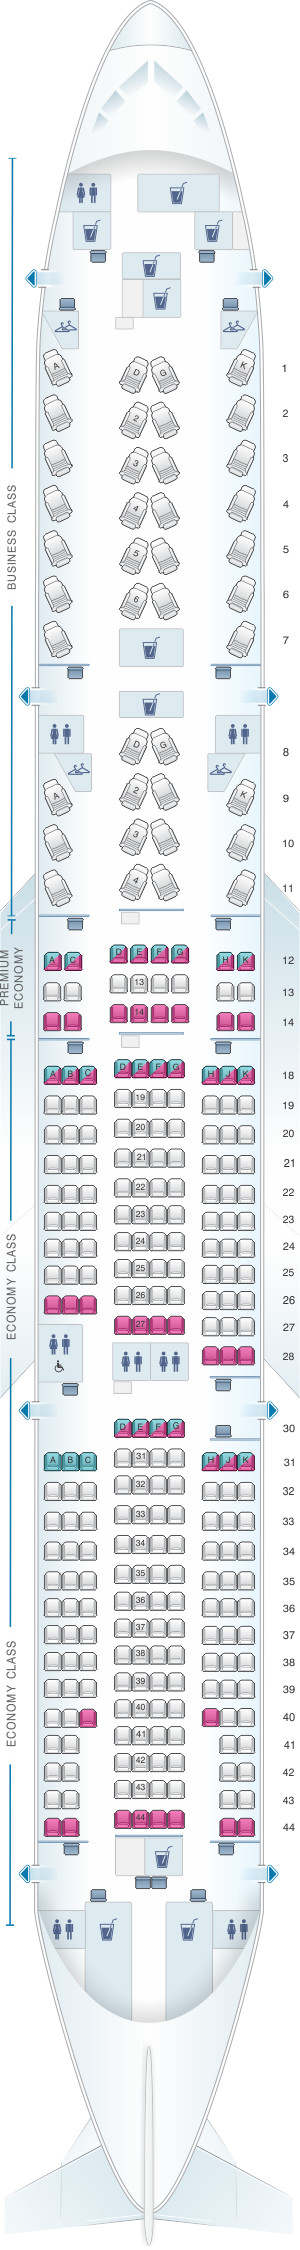 Seat map for Air Canada Boeing B777 200LR (77L)